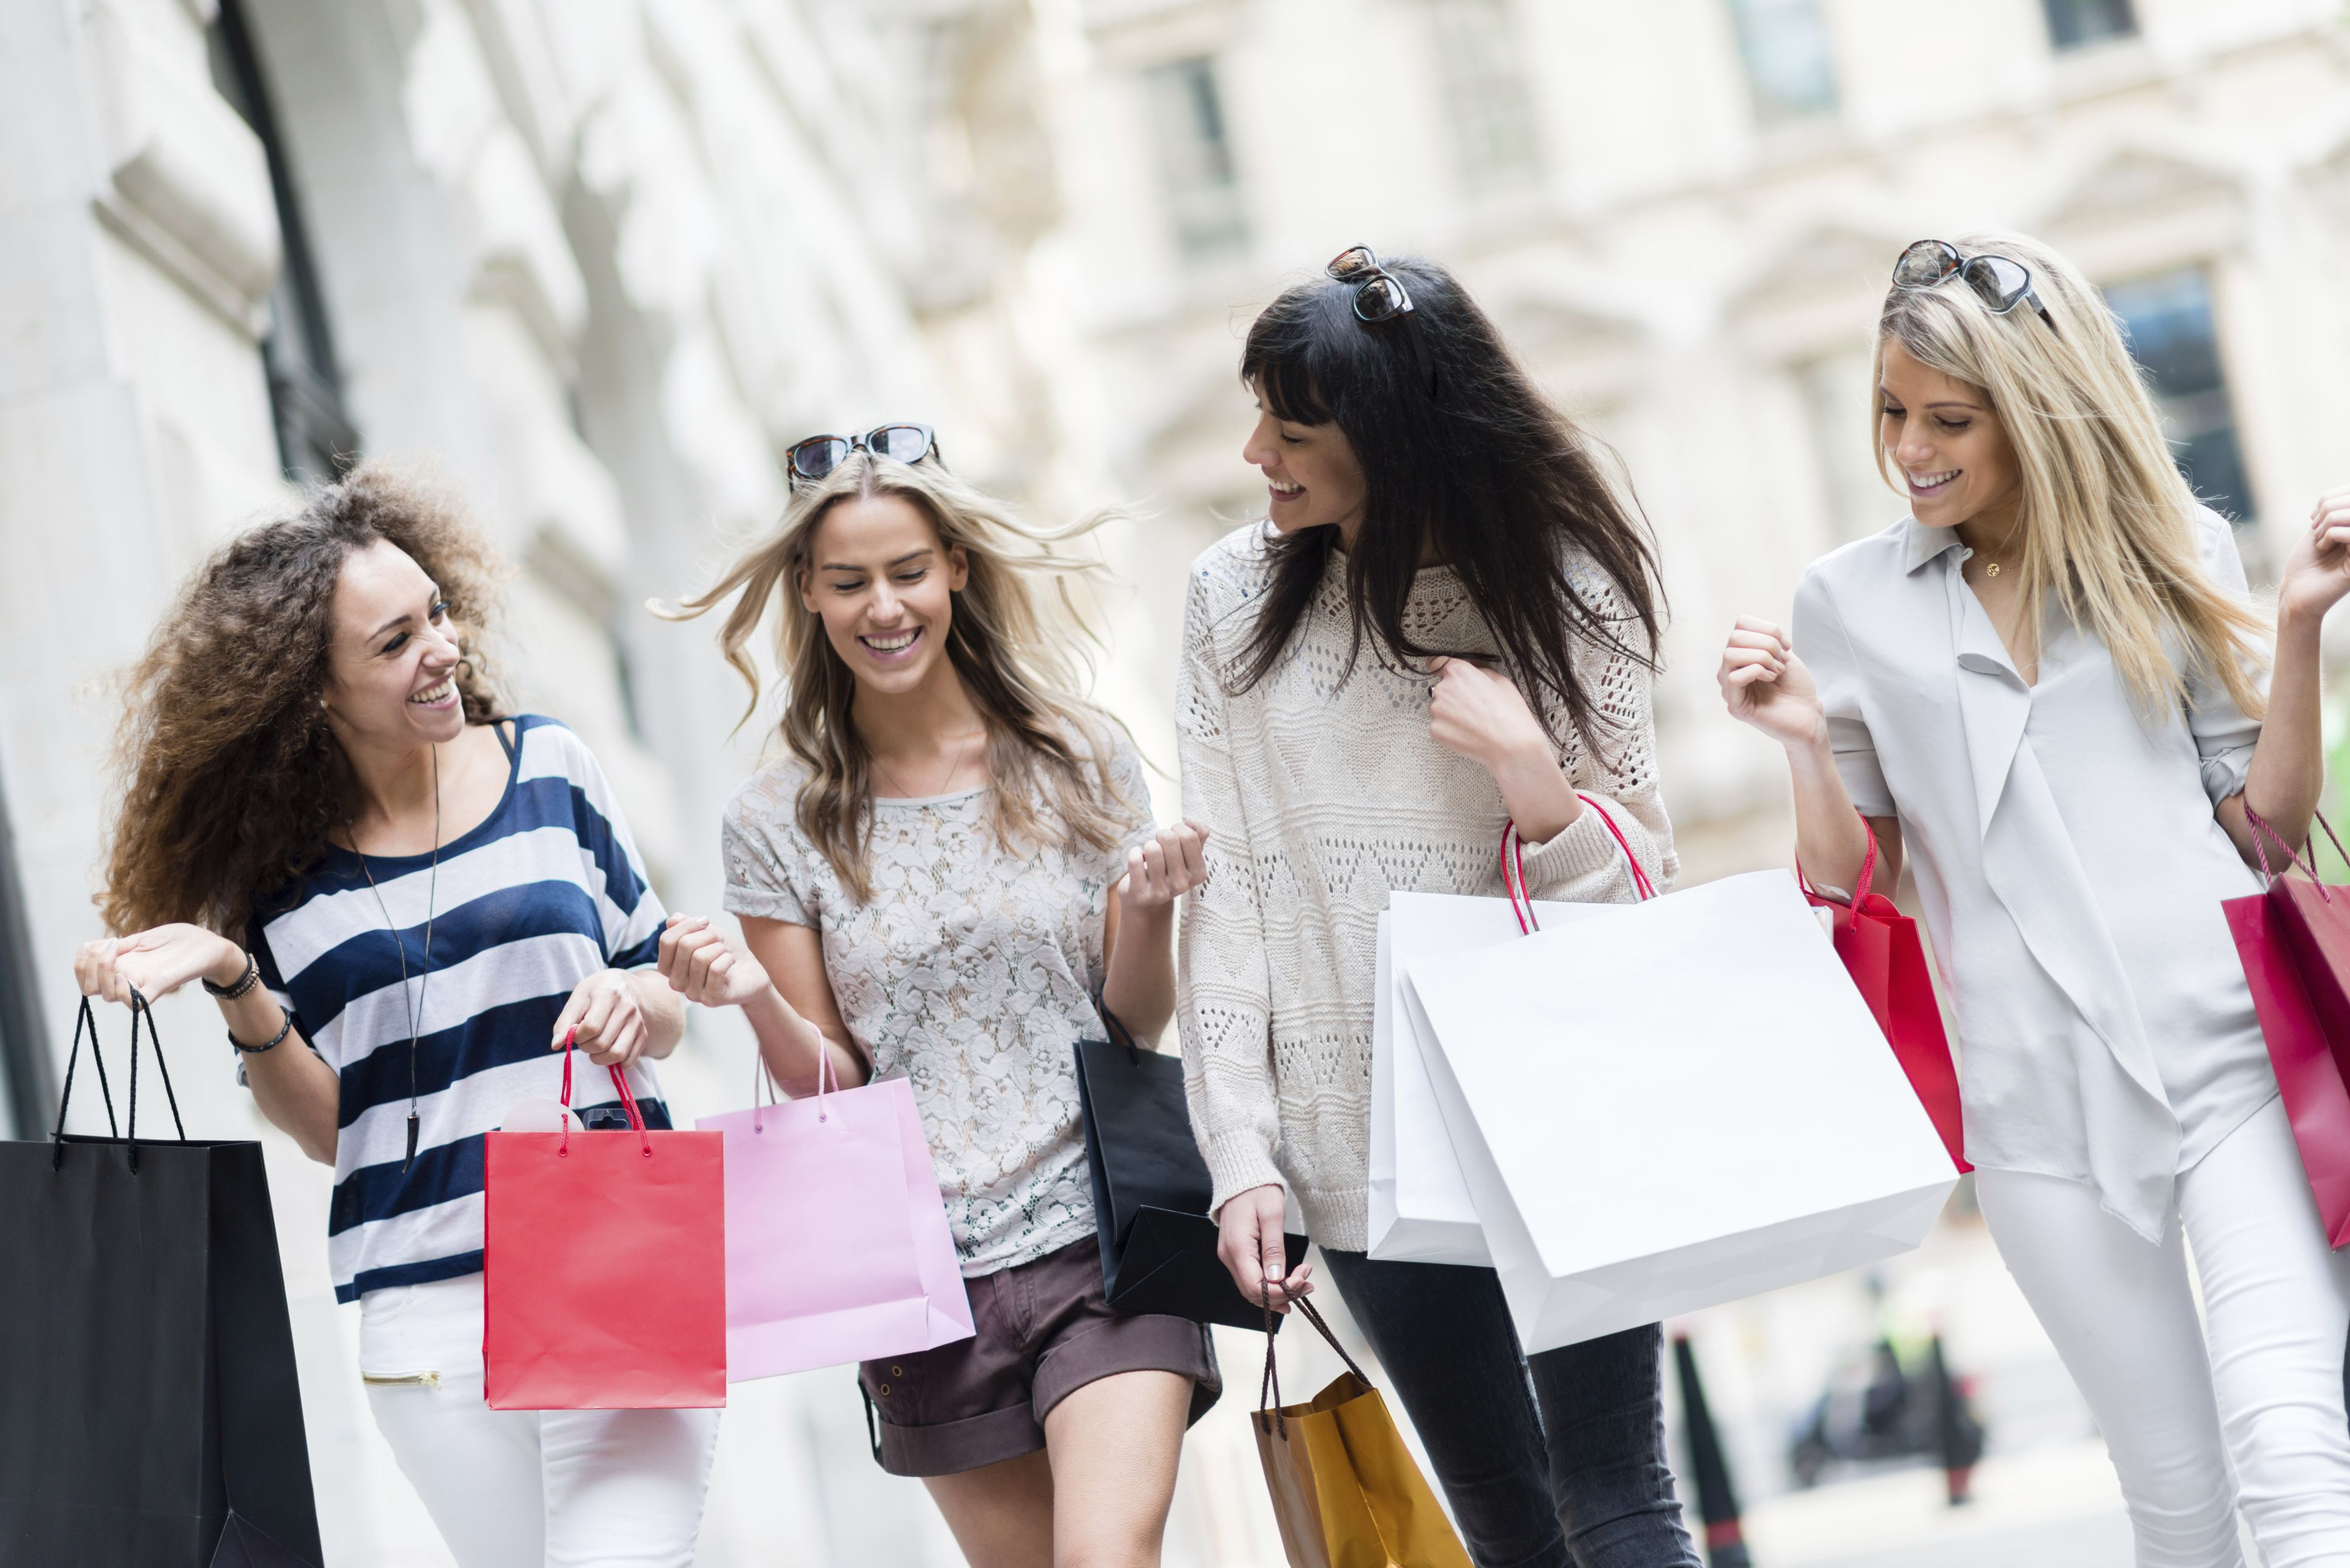 ladies shopping and dining - HD3864×2579